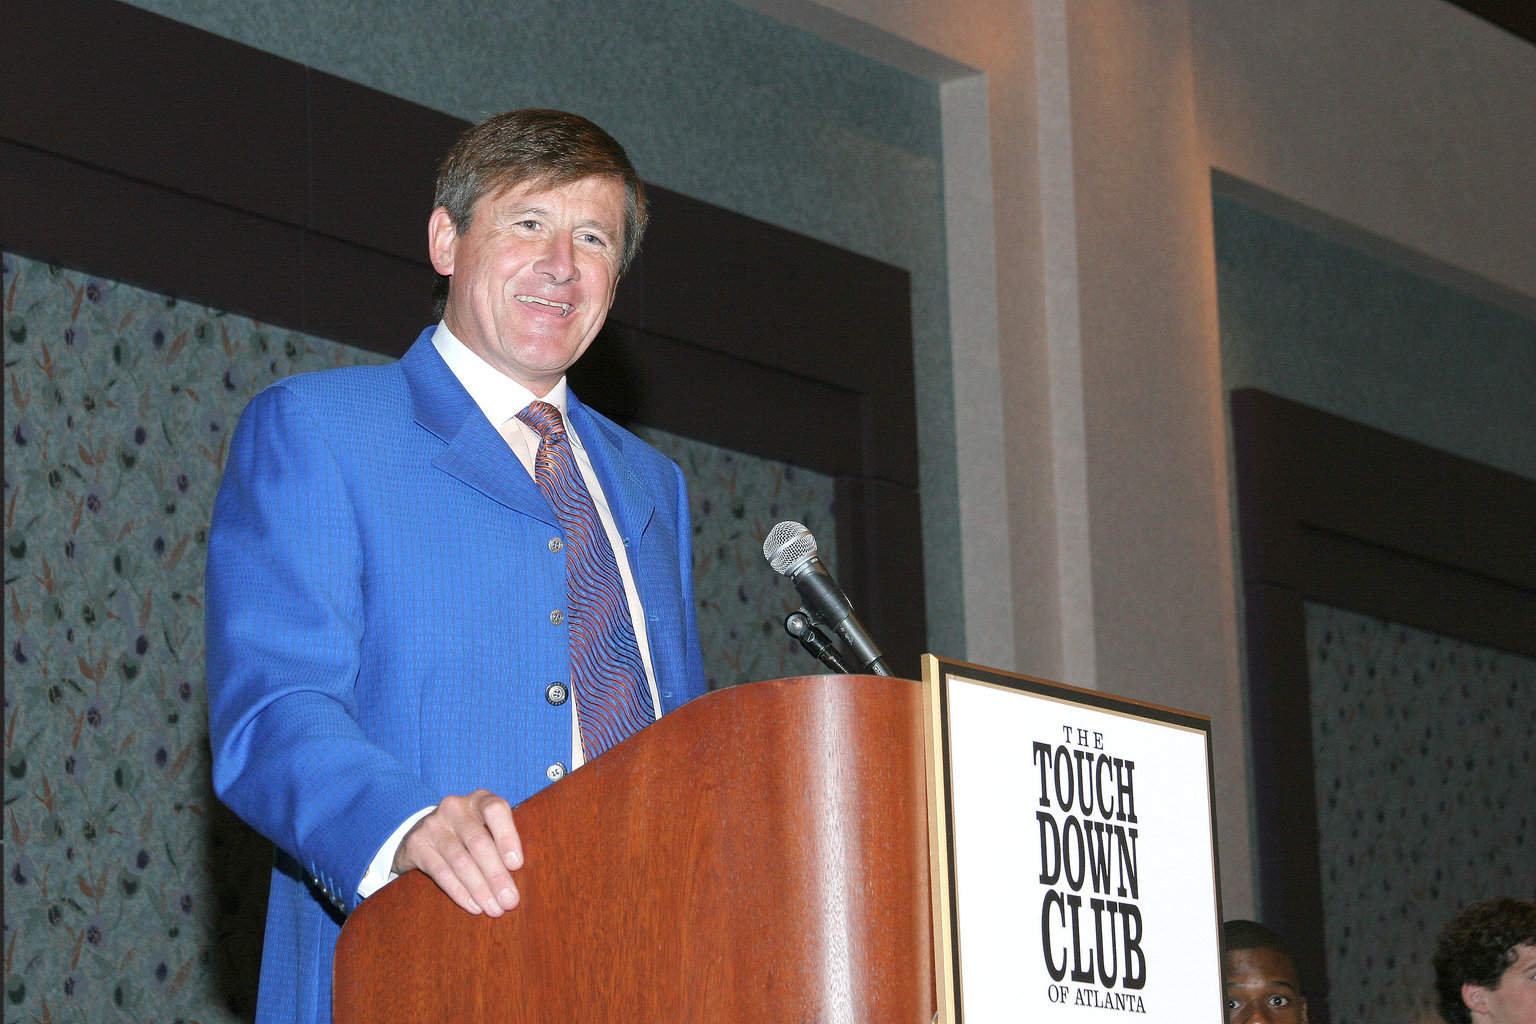 11-1-04 Craig Sager introducing Tommy Bowden to the TCA